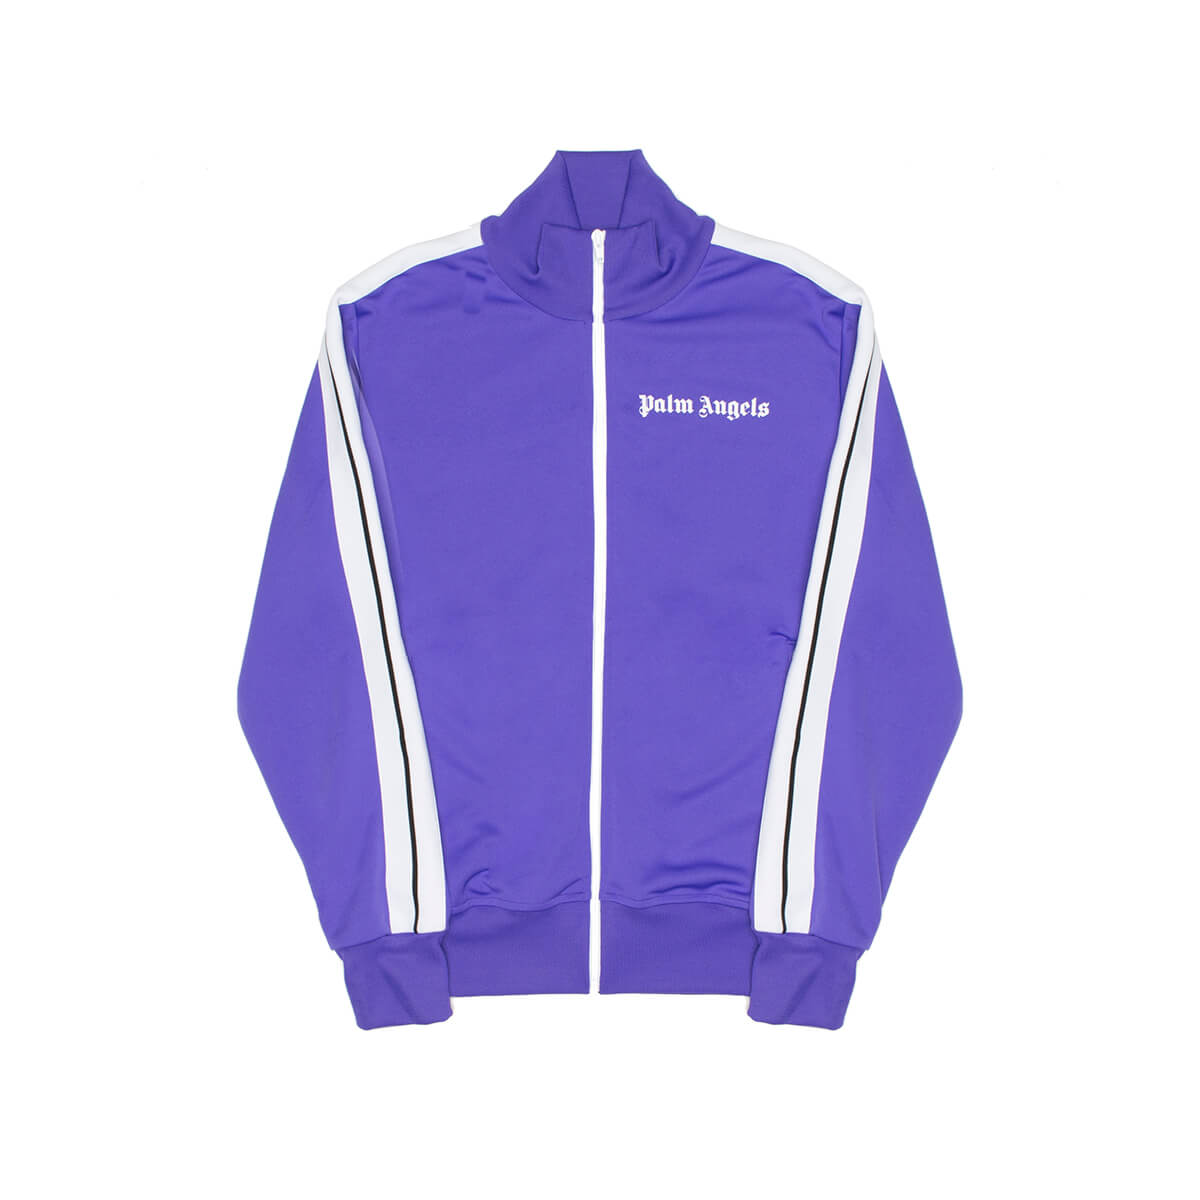 Palm Angels Jackets CLASSIC TRACK TOP